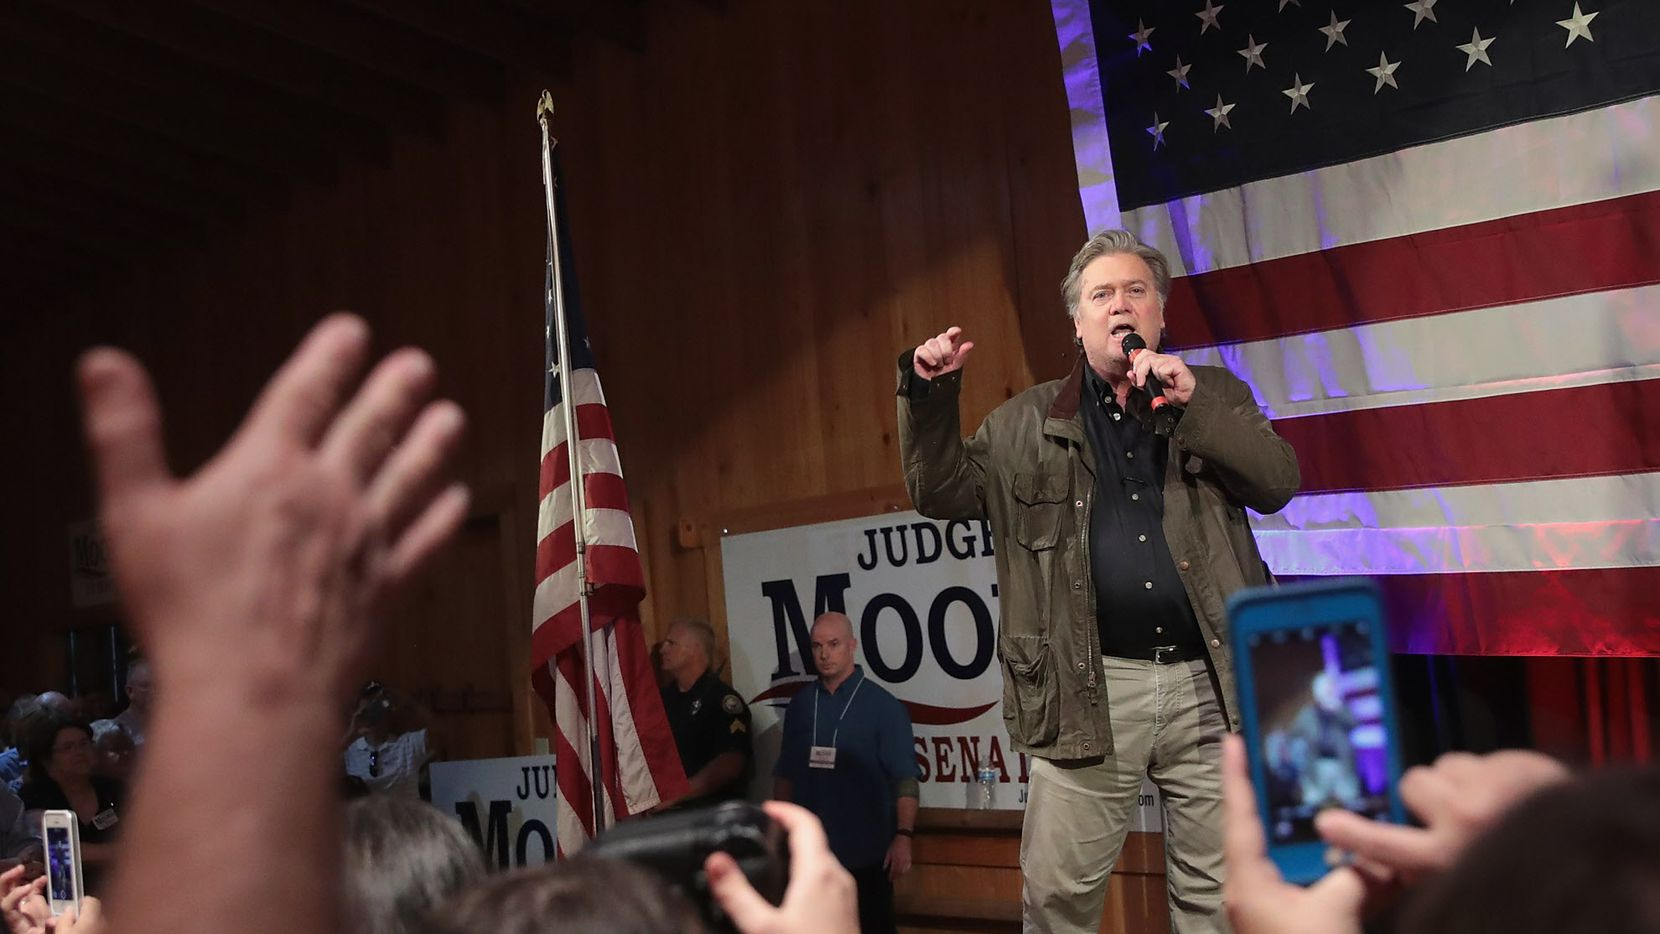 Former advisor to President Donald Trump and  executive chairman of Breitbart News, Steve Bannon, speaks at a campaign event for Republican candidate for the U.S. Senate in Alabama Roy Moore on September 25, 2017 in Fairhope, Alabama.